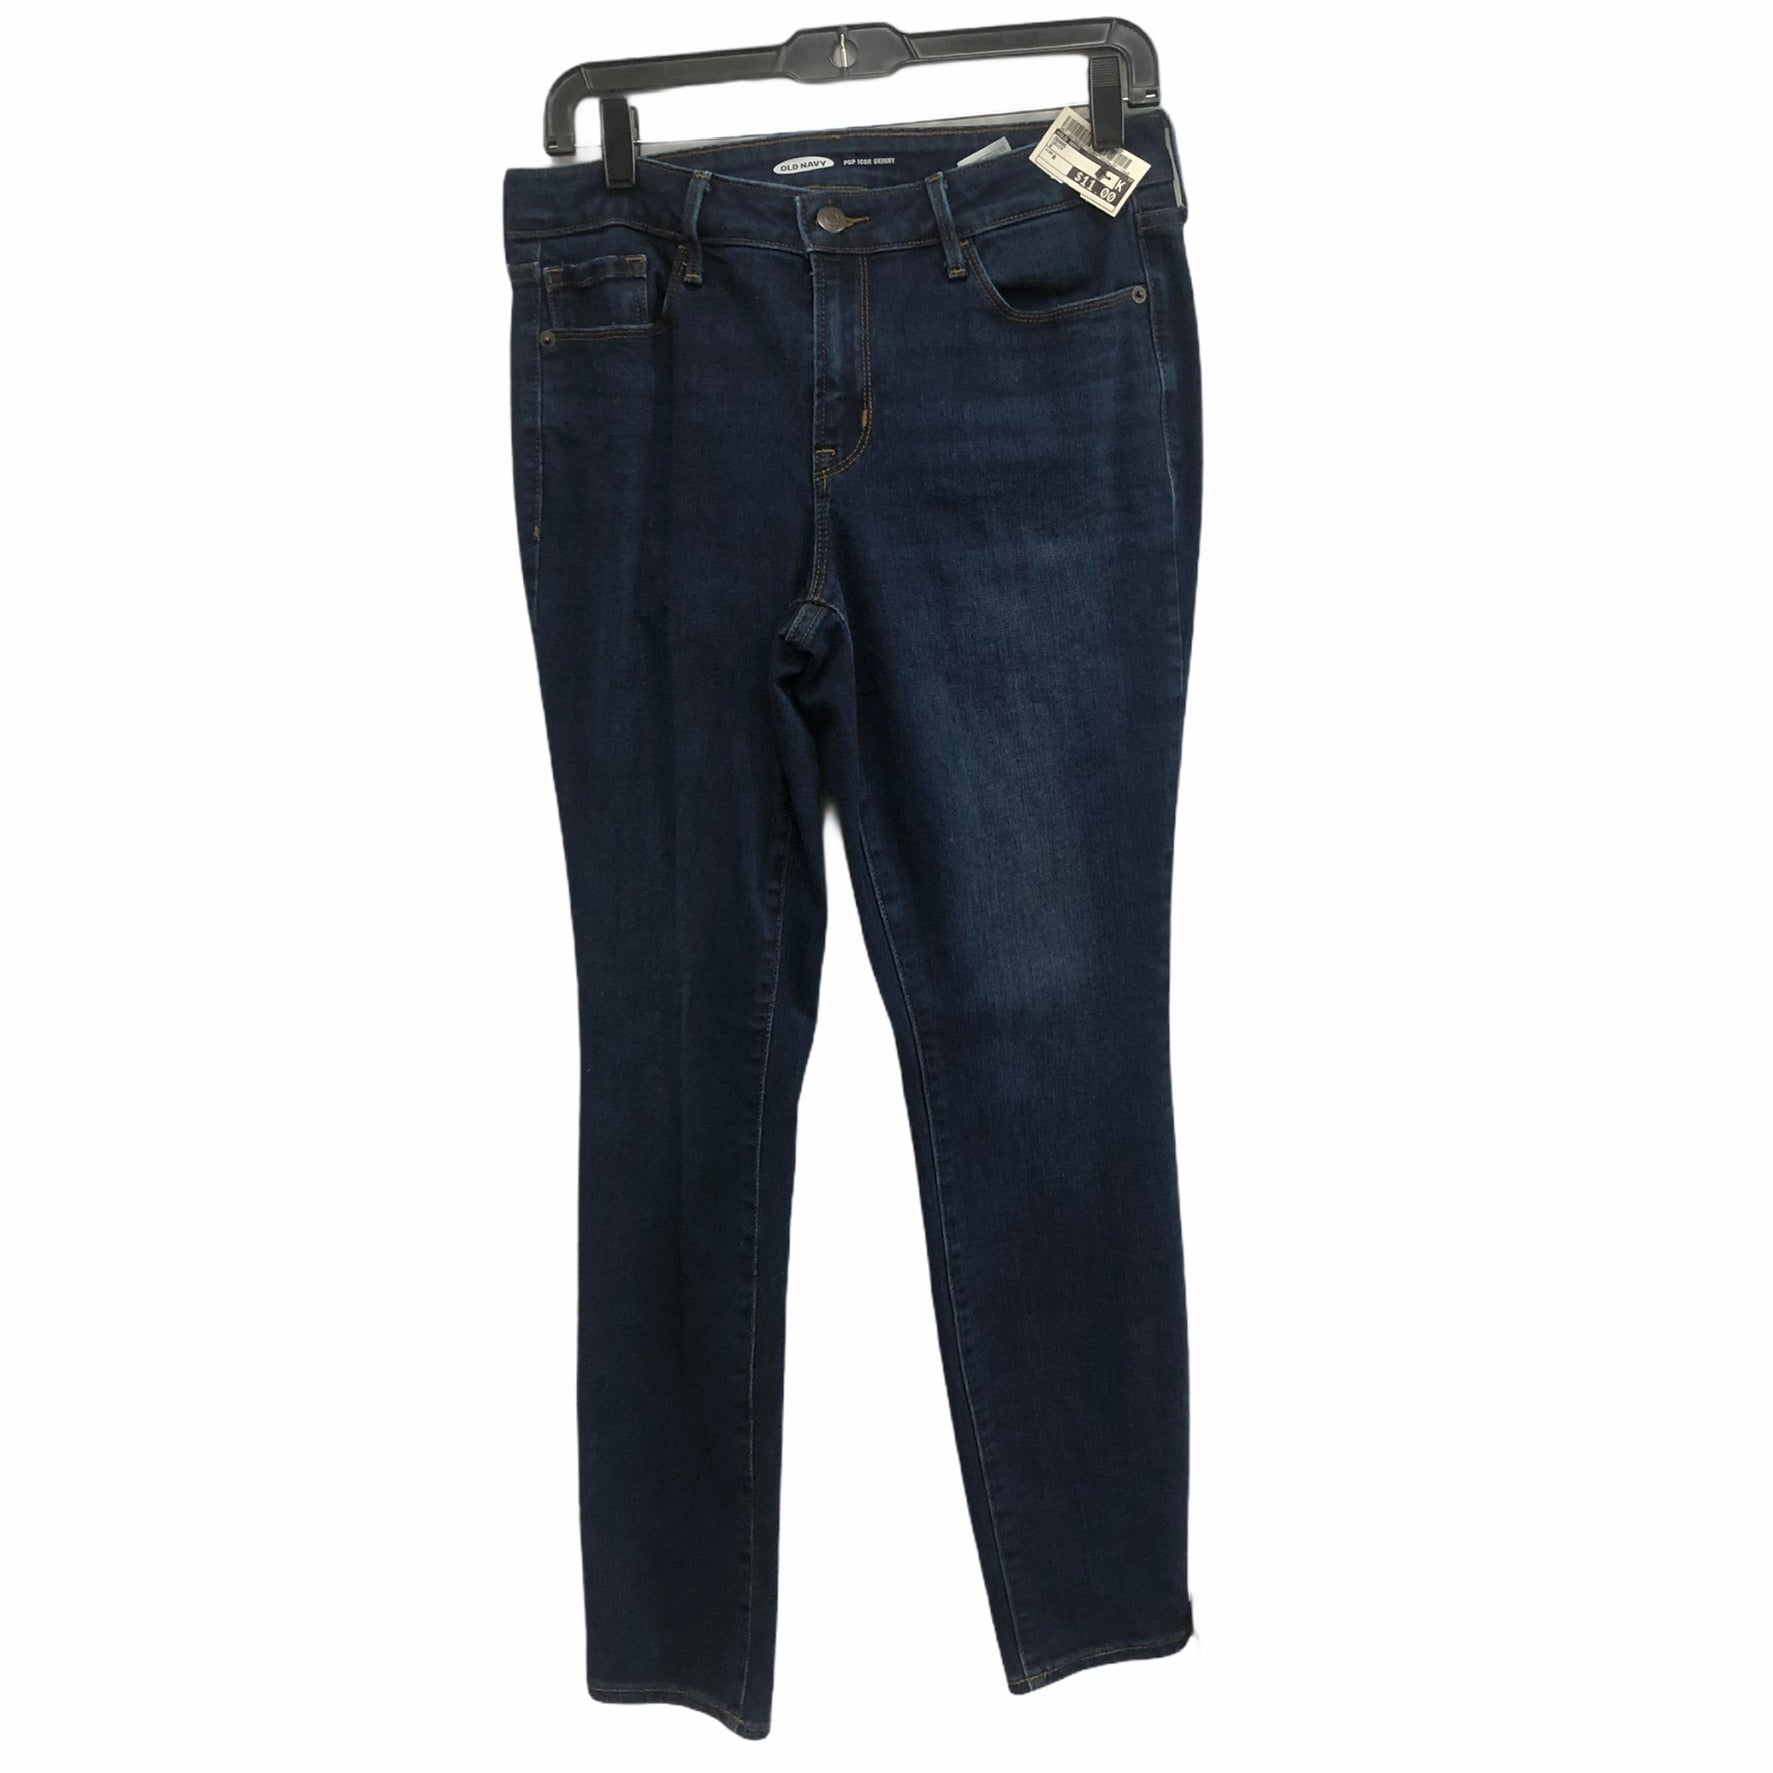 Primary Photo - brand: old navy , style: jeans , color: denim , size: 8 , sku: 267-26790-9718